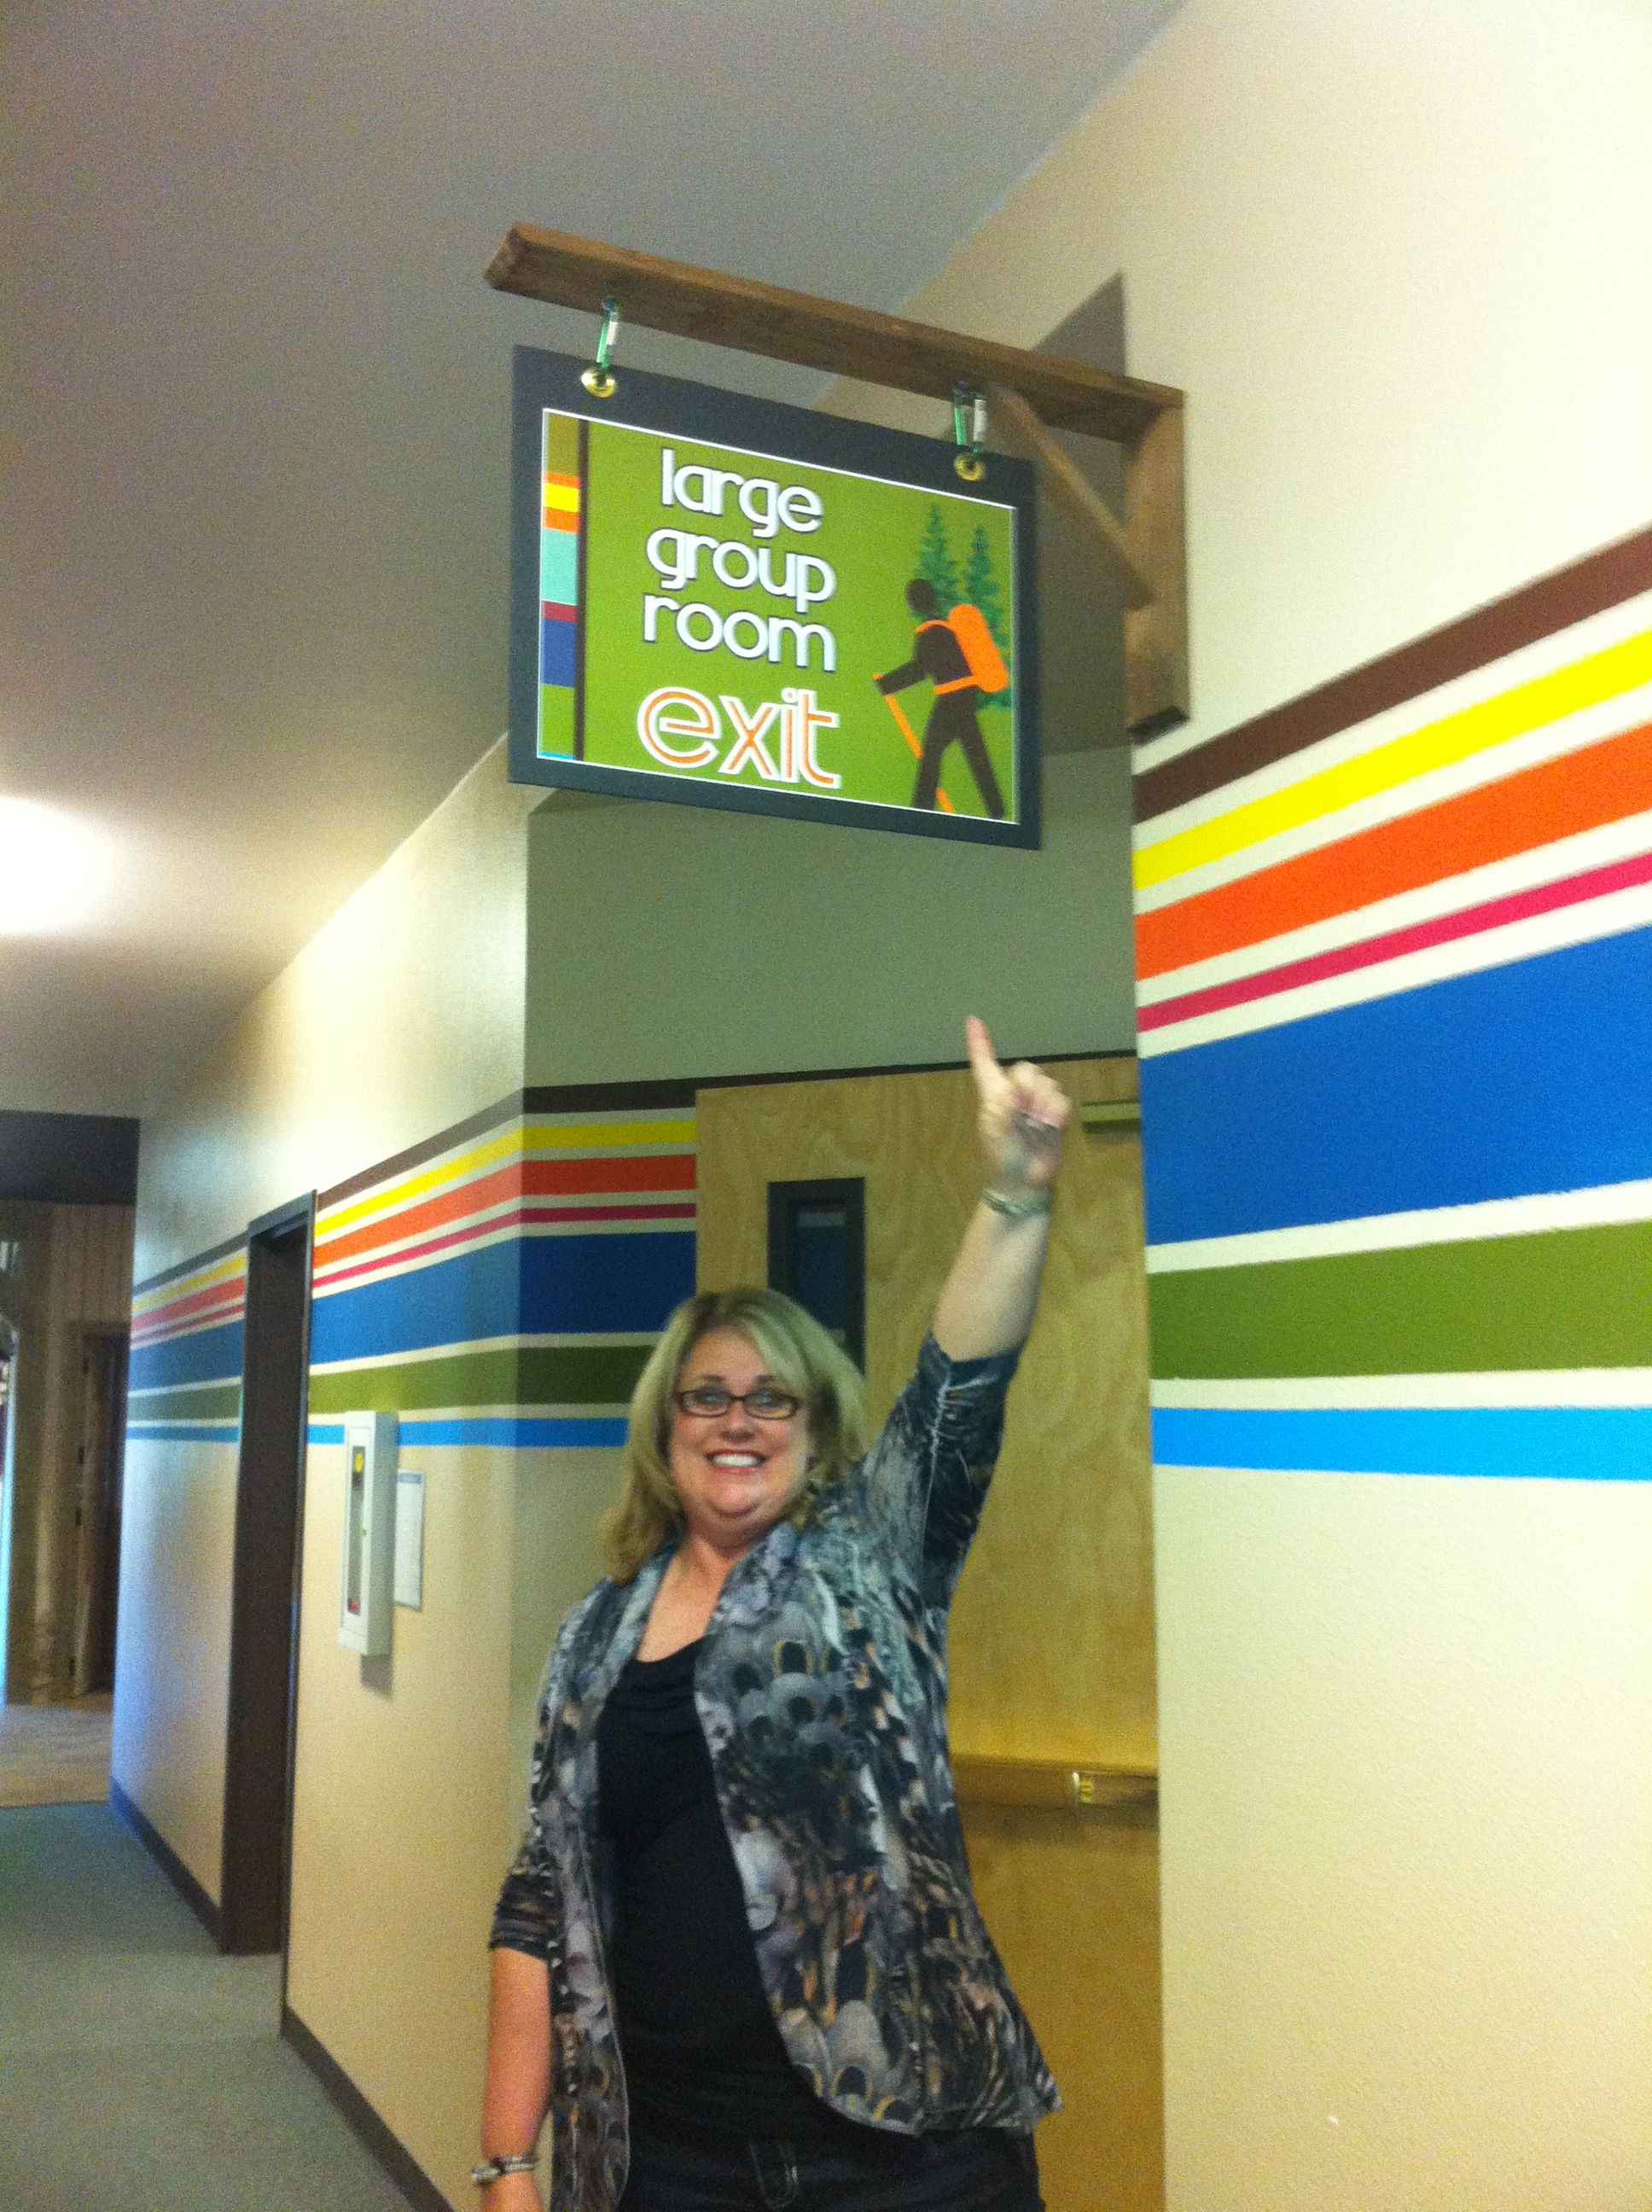 Youth Group Room Designs: Pin On Children's Ministry Rooms